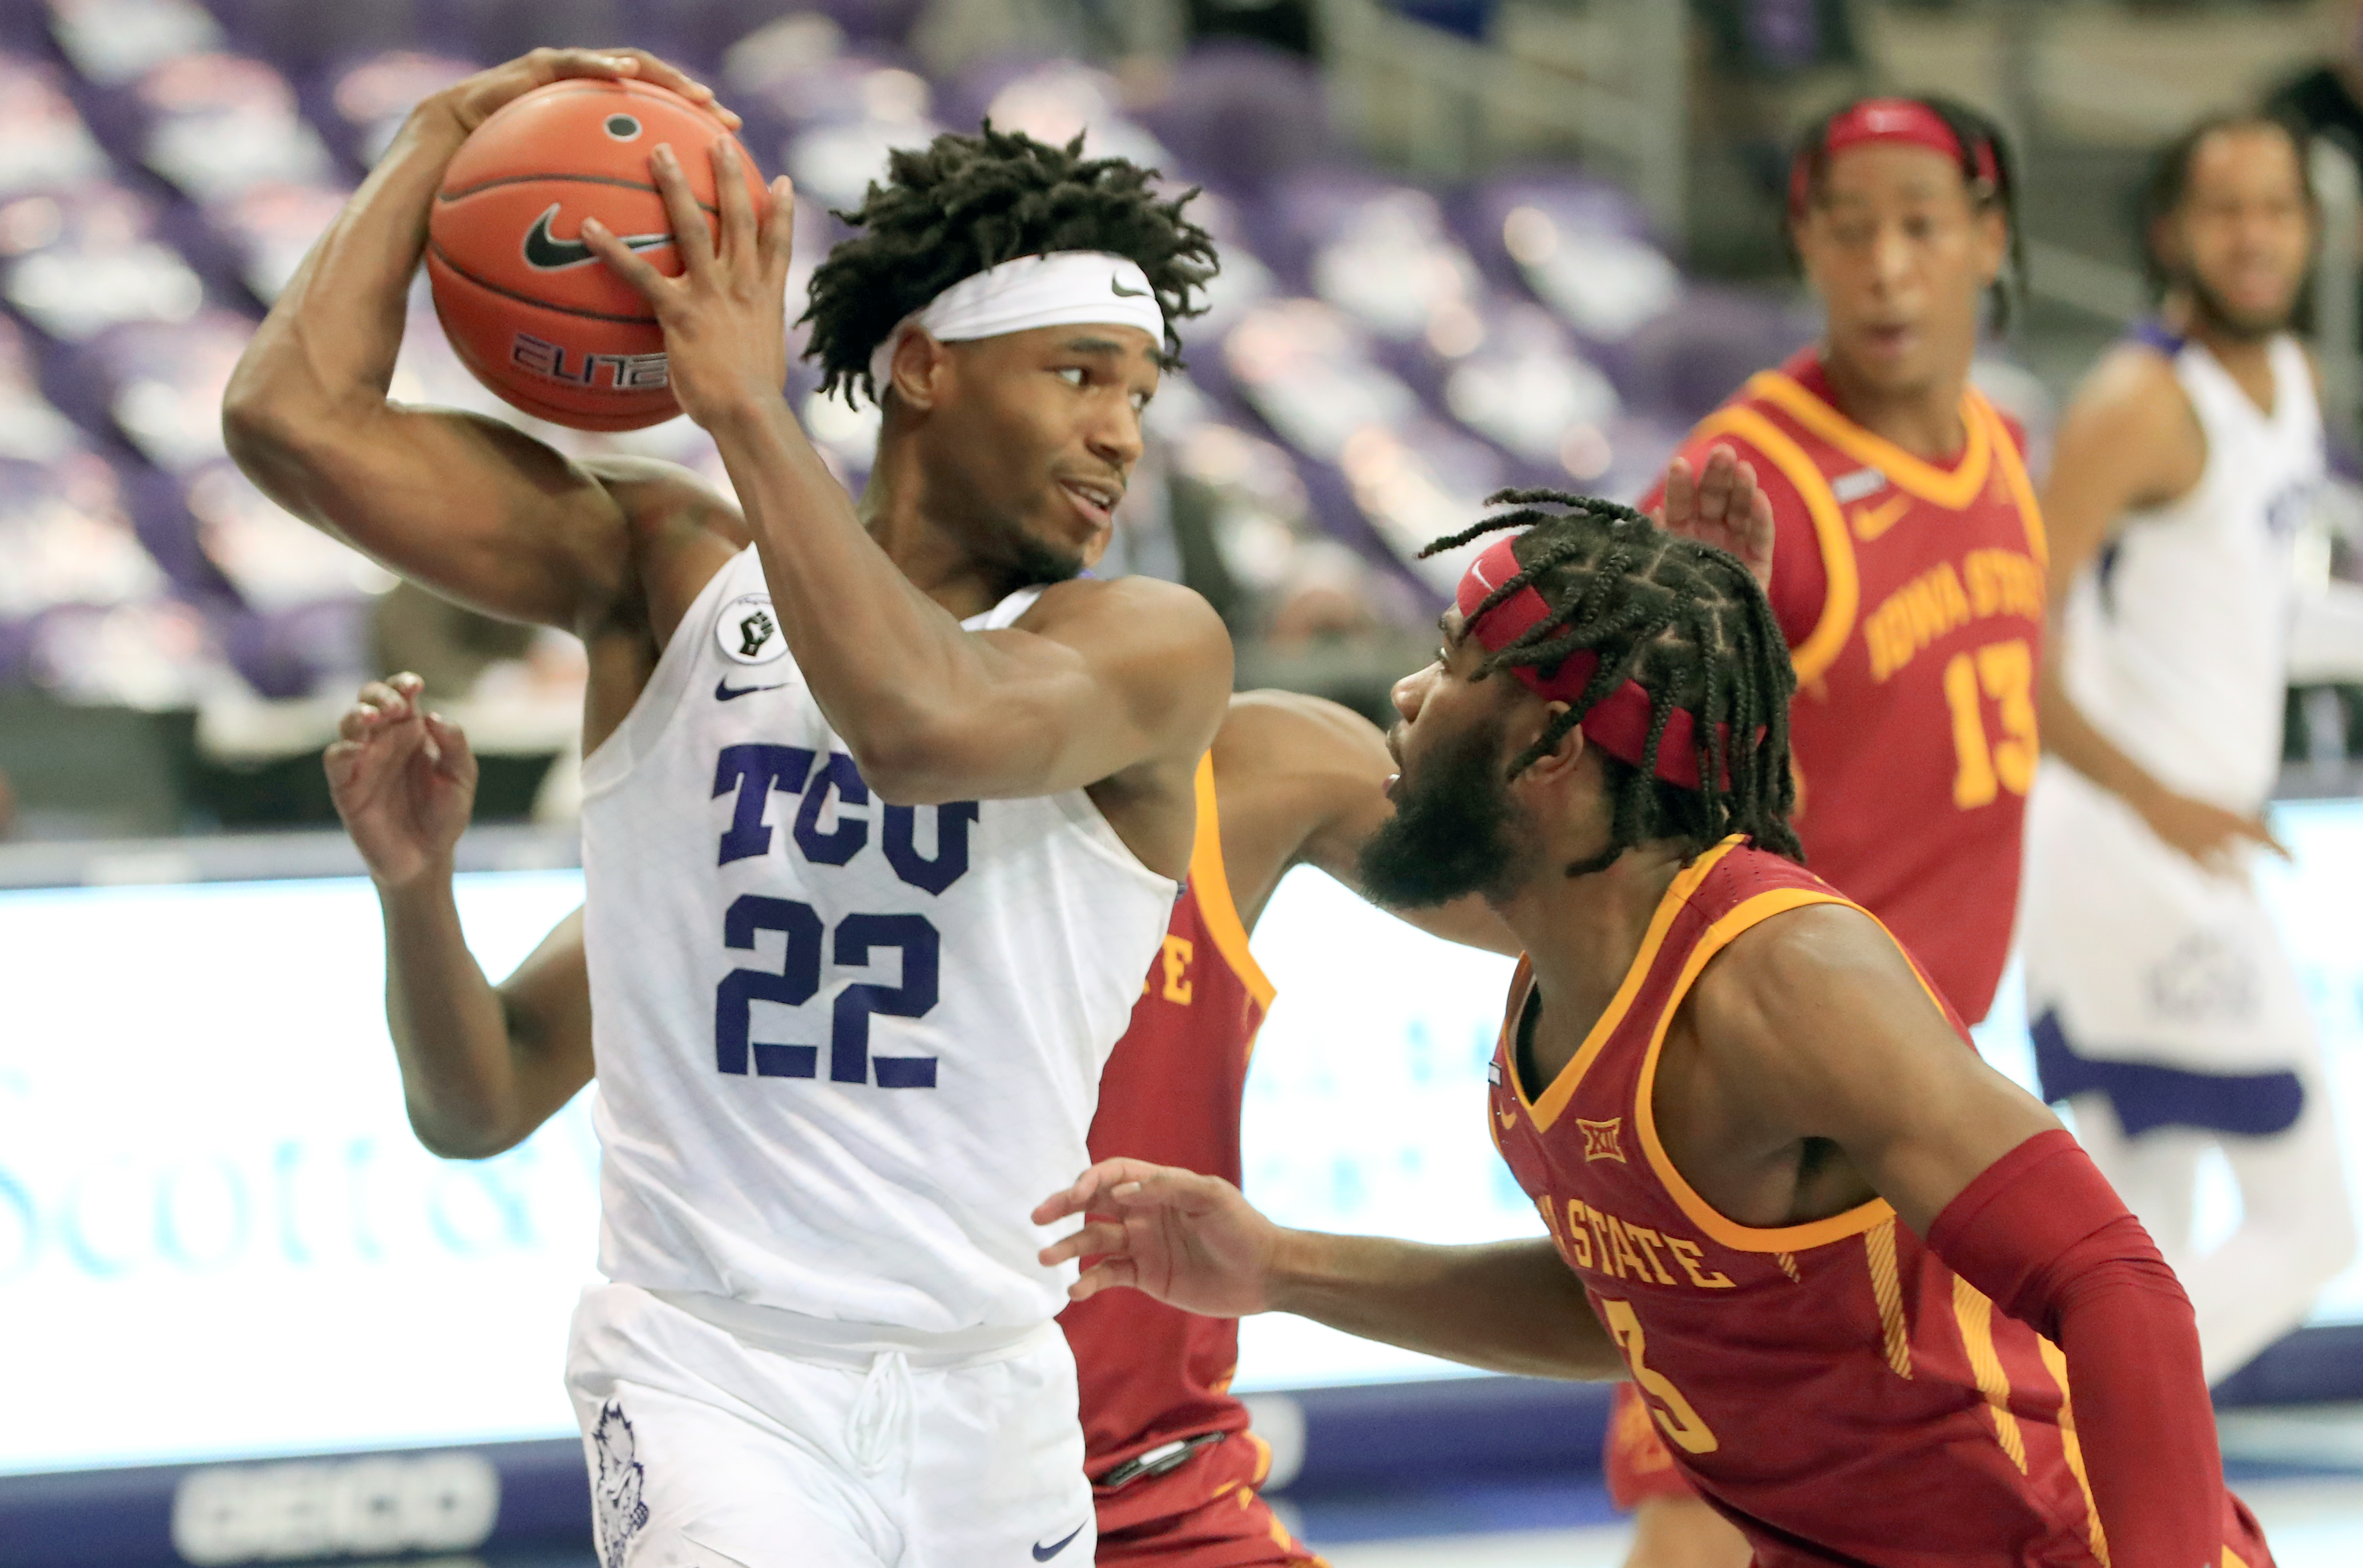 Feb 9, 2021; Fort Worth, Texas, USA; TCU Horned Frogs guard RJ Nembhard (22) looks to pass as Iowa State Cyclones guard Tre Jackson (3) defends during the second half at Ed and Rae Schollmaier Arena.